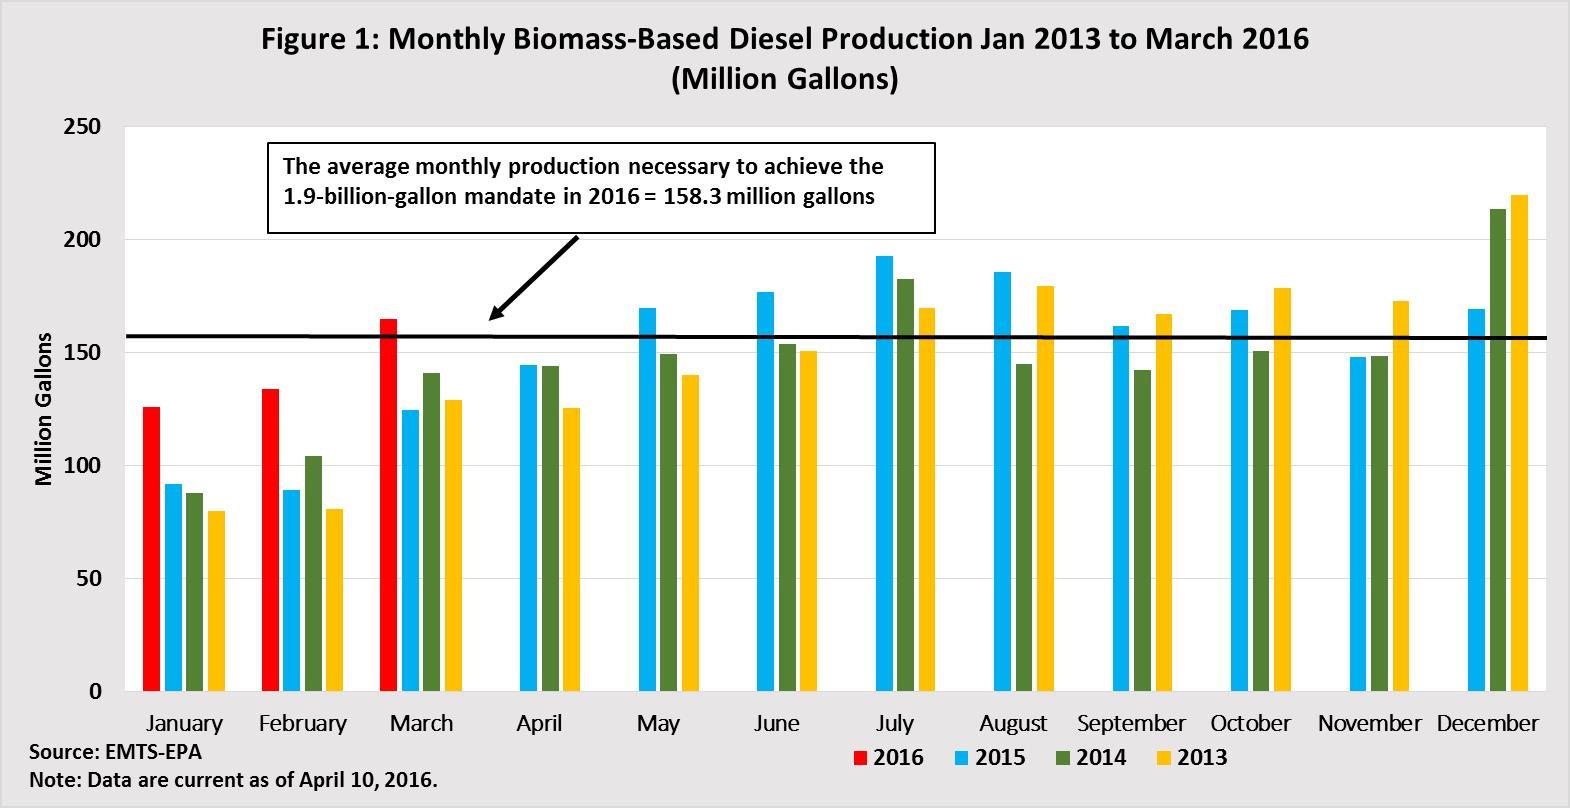 Monthly Biomass-Based Diesel Prodction